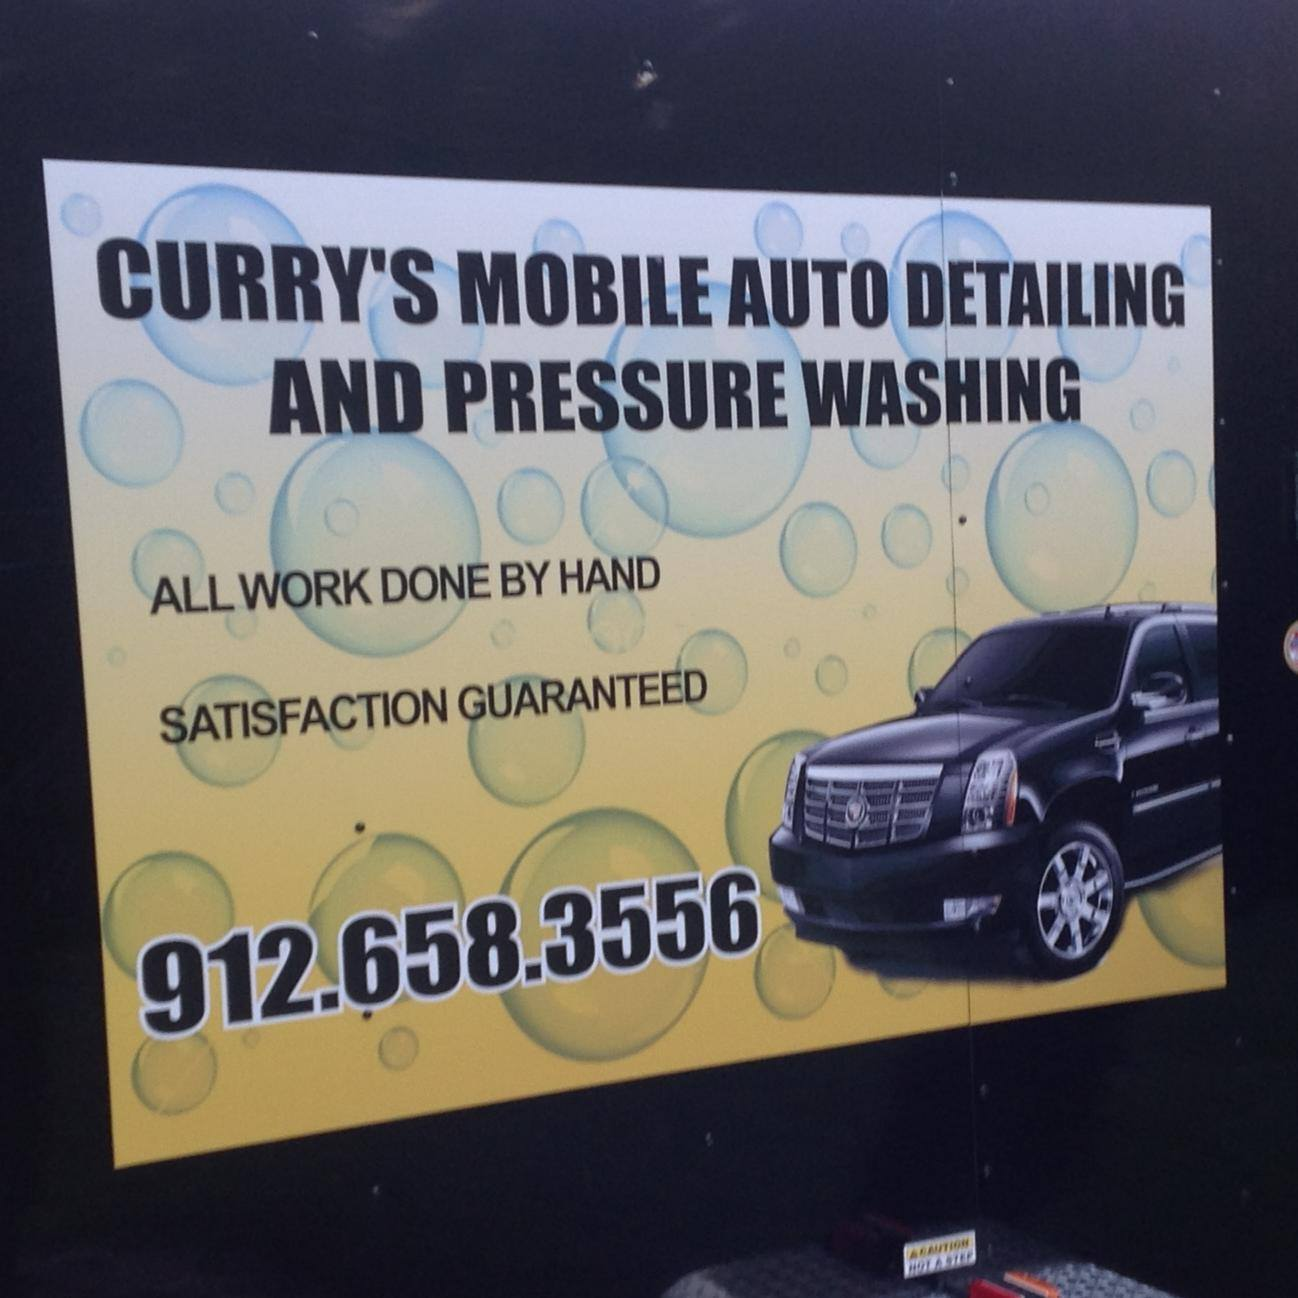 Curry's Mobile